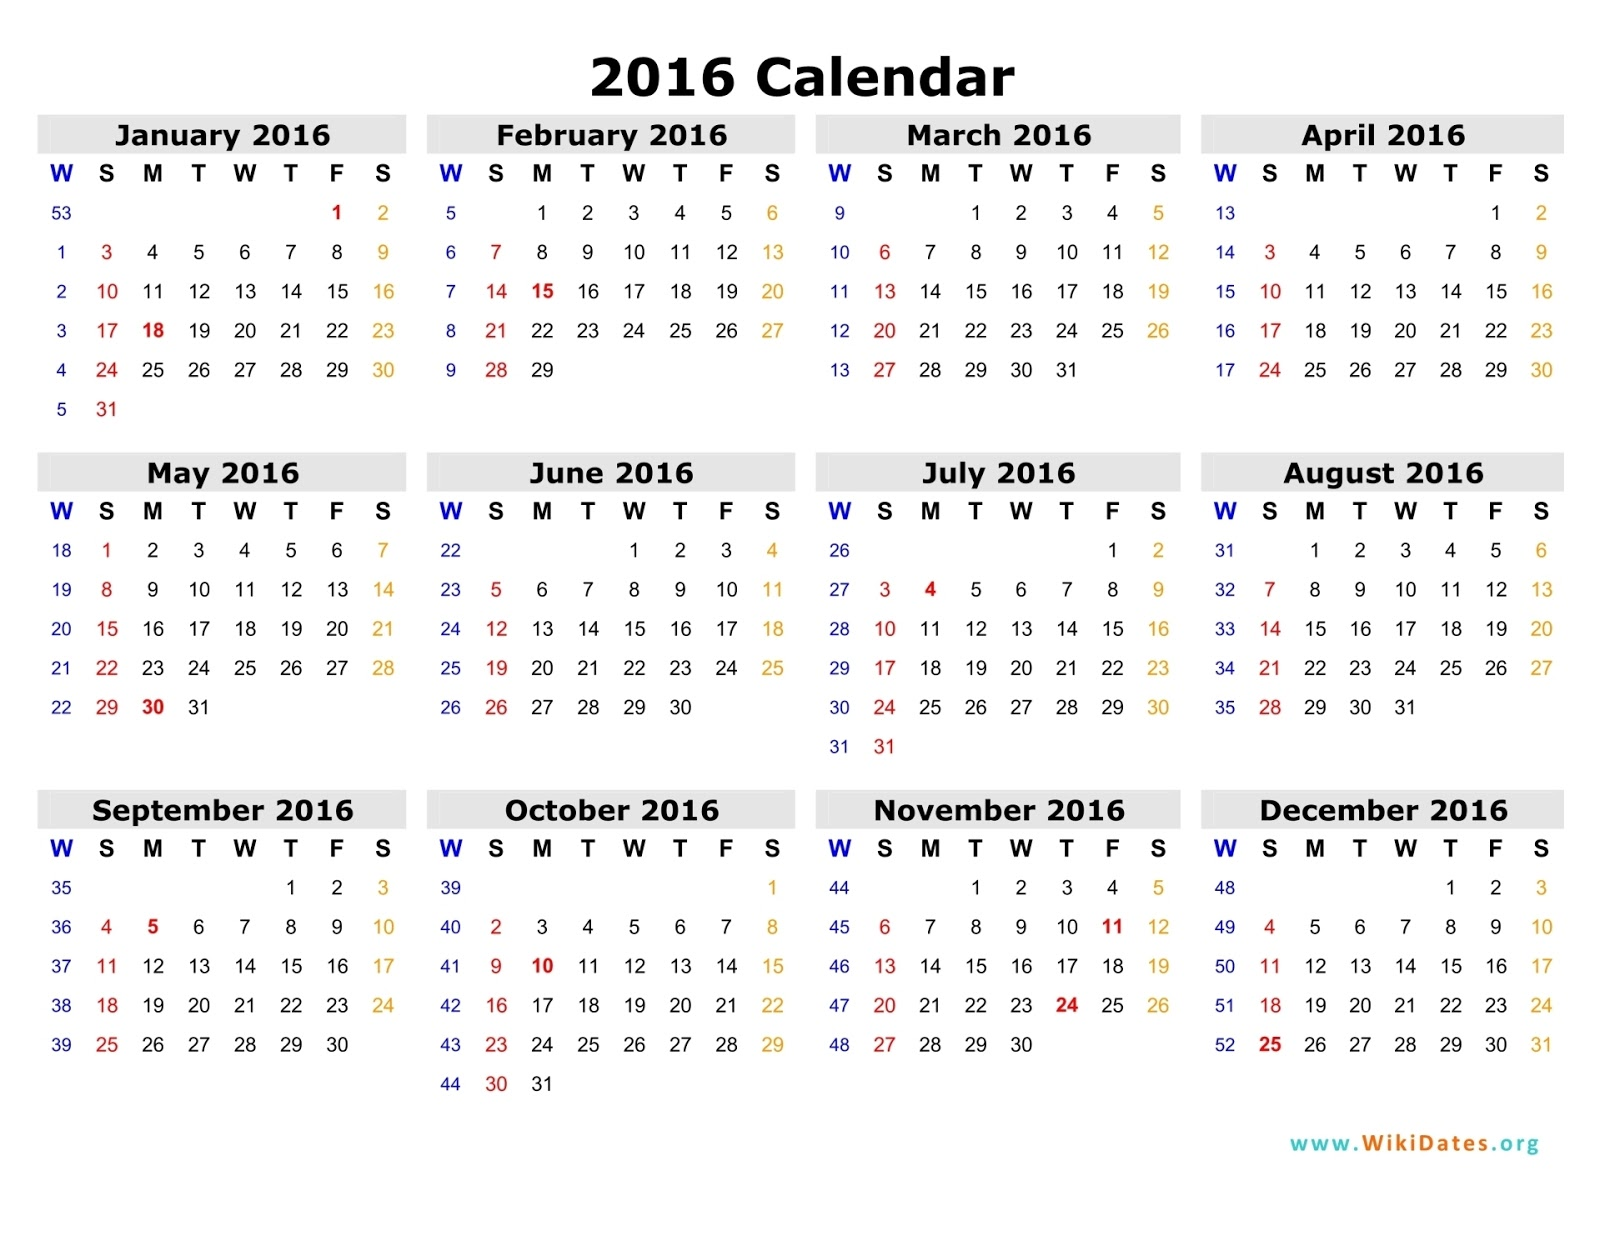 A2z Photo gallery: Download Calendar 2016 for free